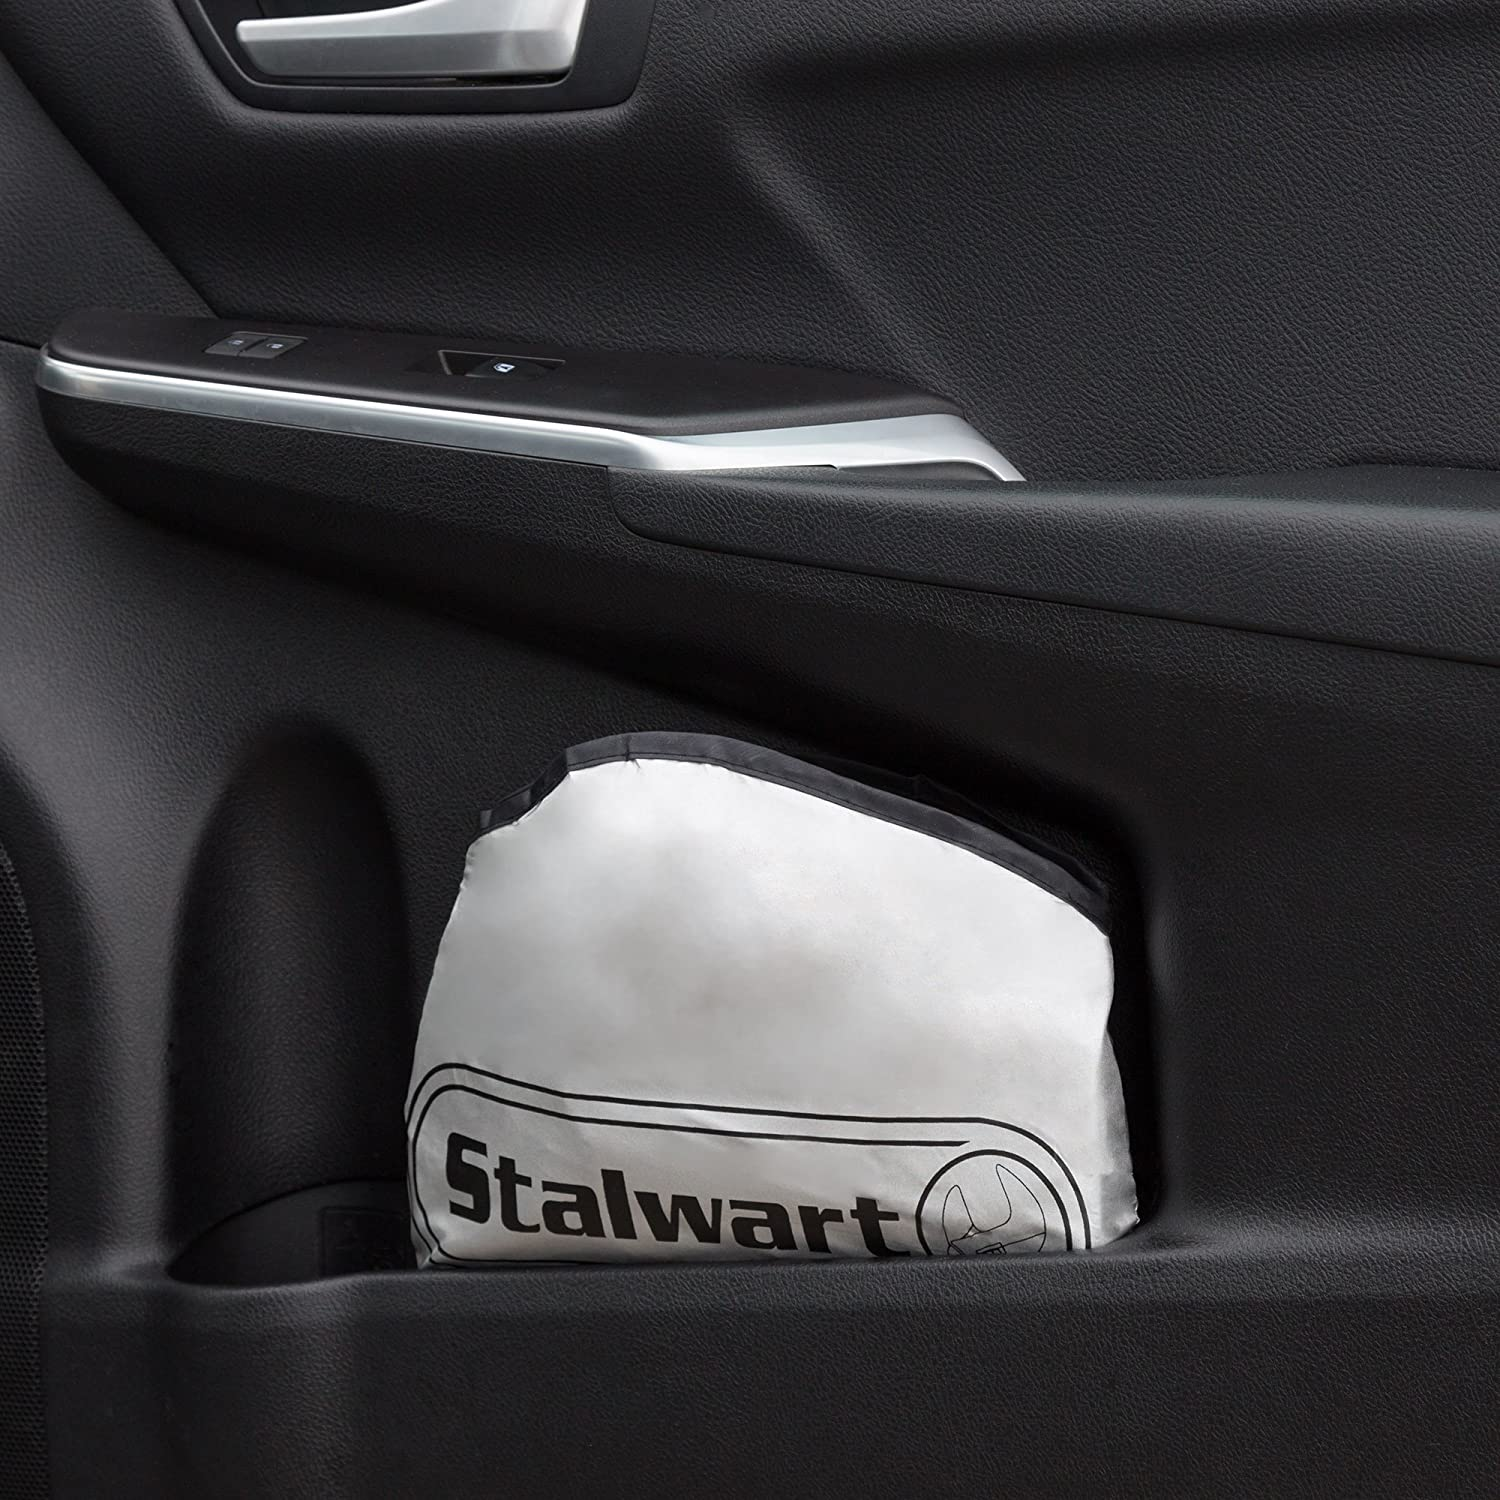 Windshield Sun Shade with Storage Bag Foldable Sunshade to Protect Cars Trucks and SUVs from UV Rays and Block Heat by Stalwart